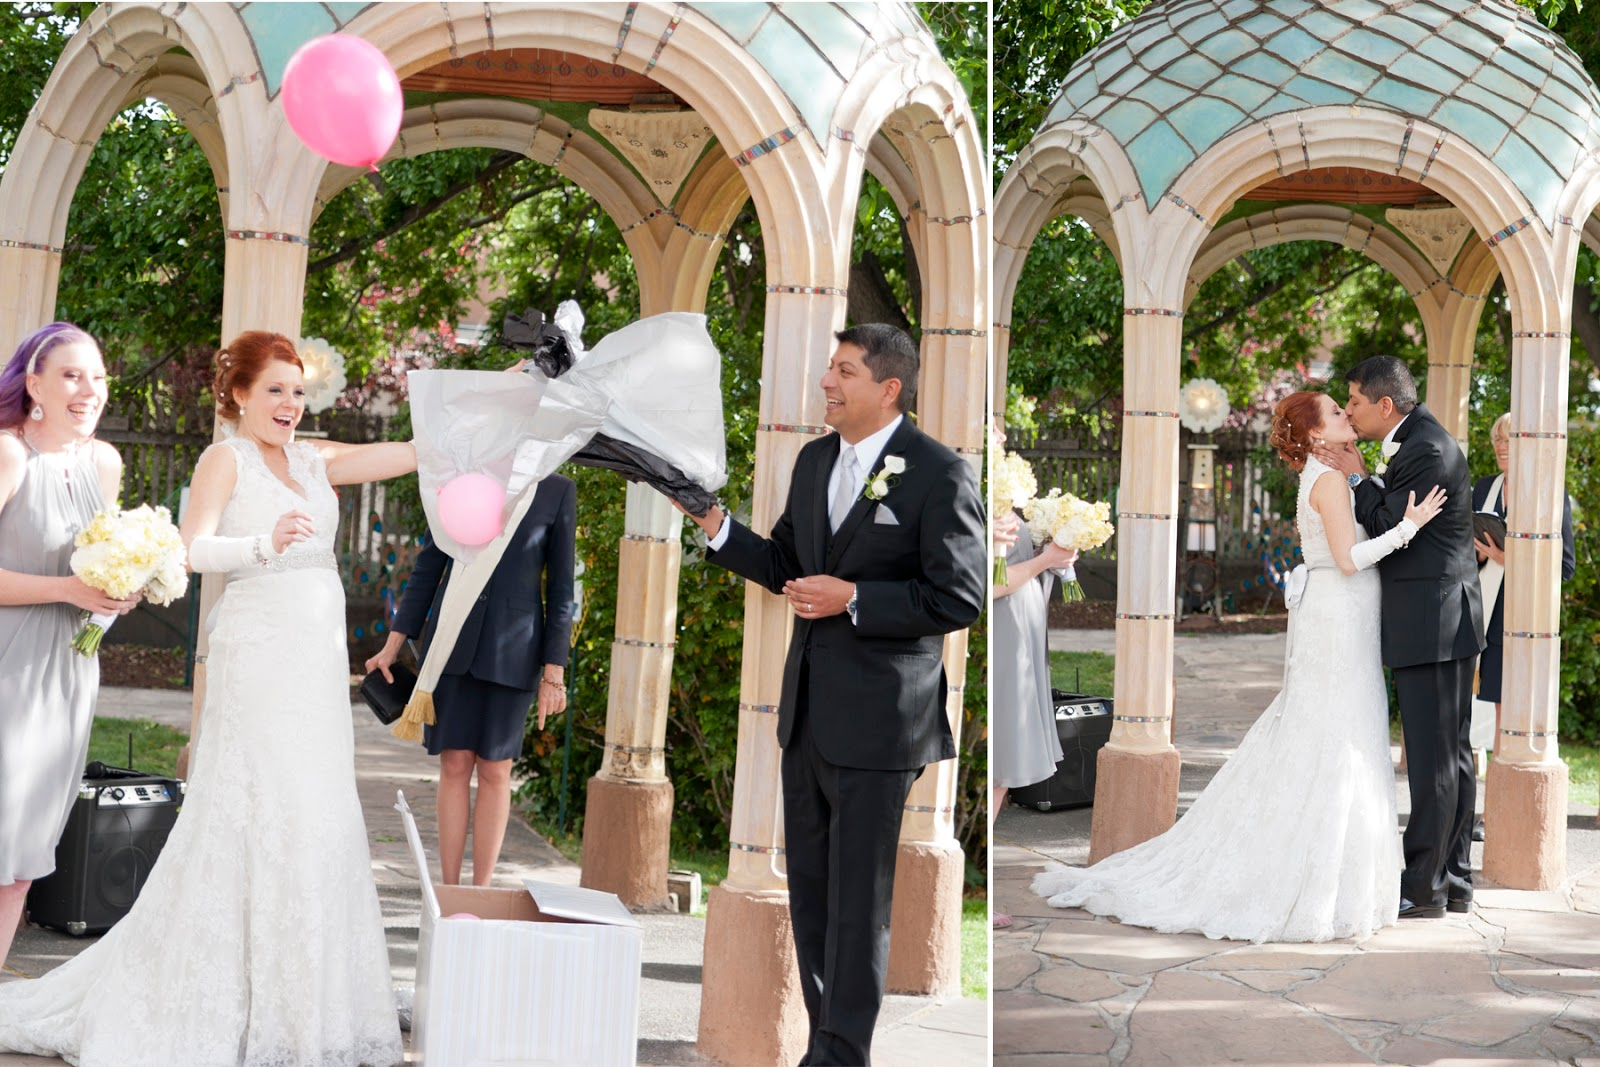 New Mexico Wedding, New mexico Wedding Photographer, Albuquerque Wedding Photography, Albuquerque Wedding Photographer, Casa De Suenos Wedding, Casa de Suenos, Casa De Suenos Albuquerque, gender reveal pictures, gender reveal ideas